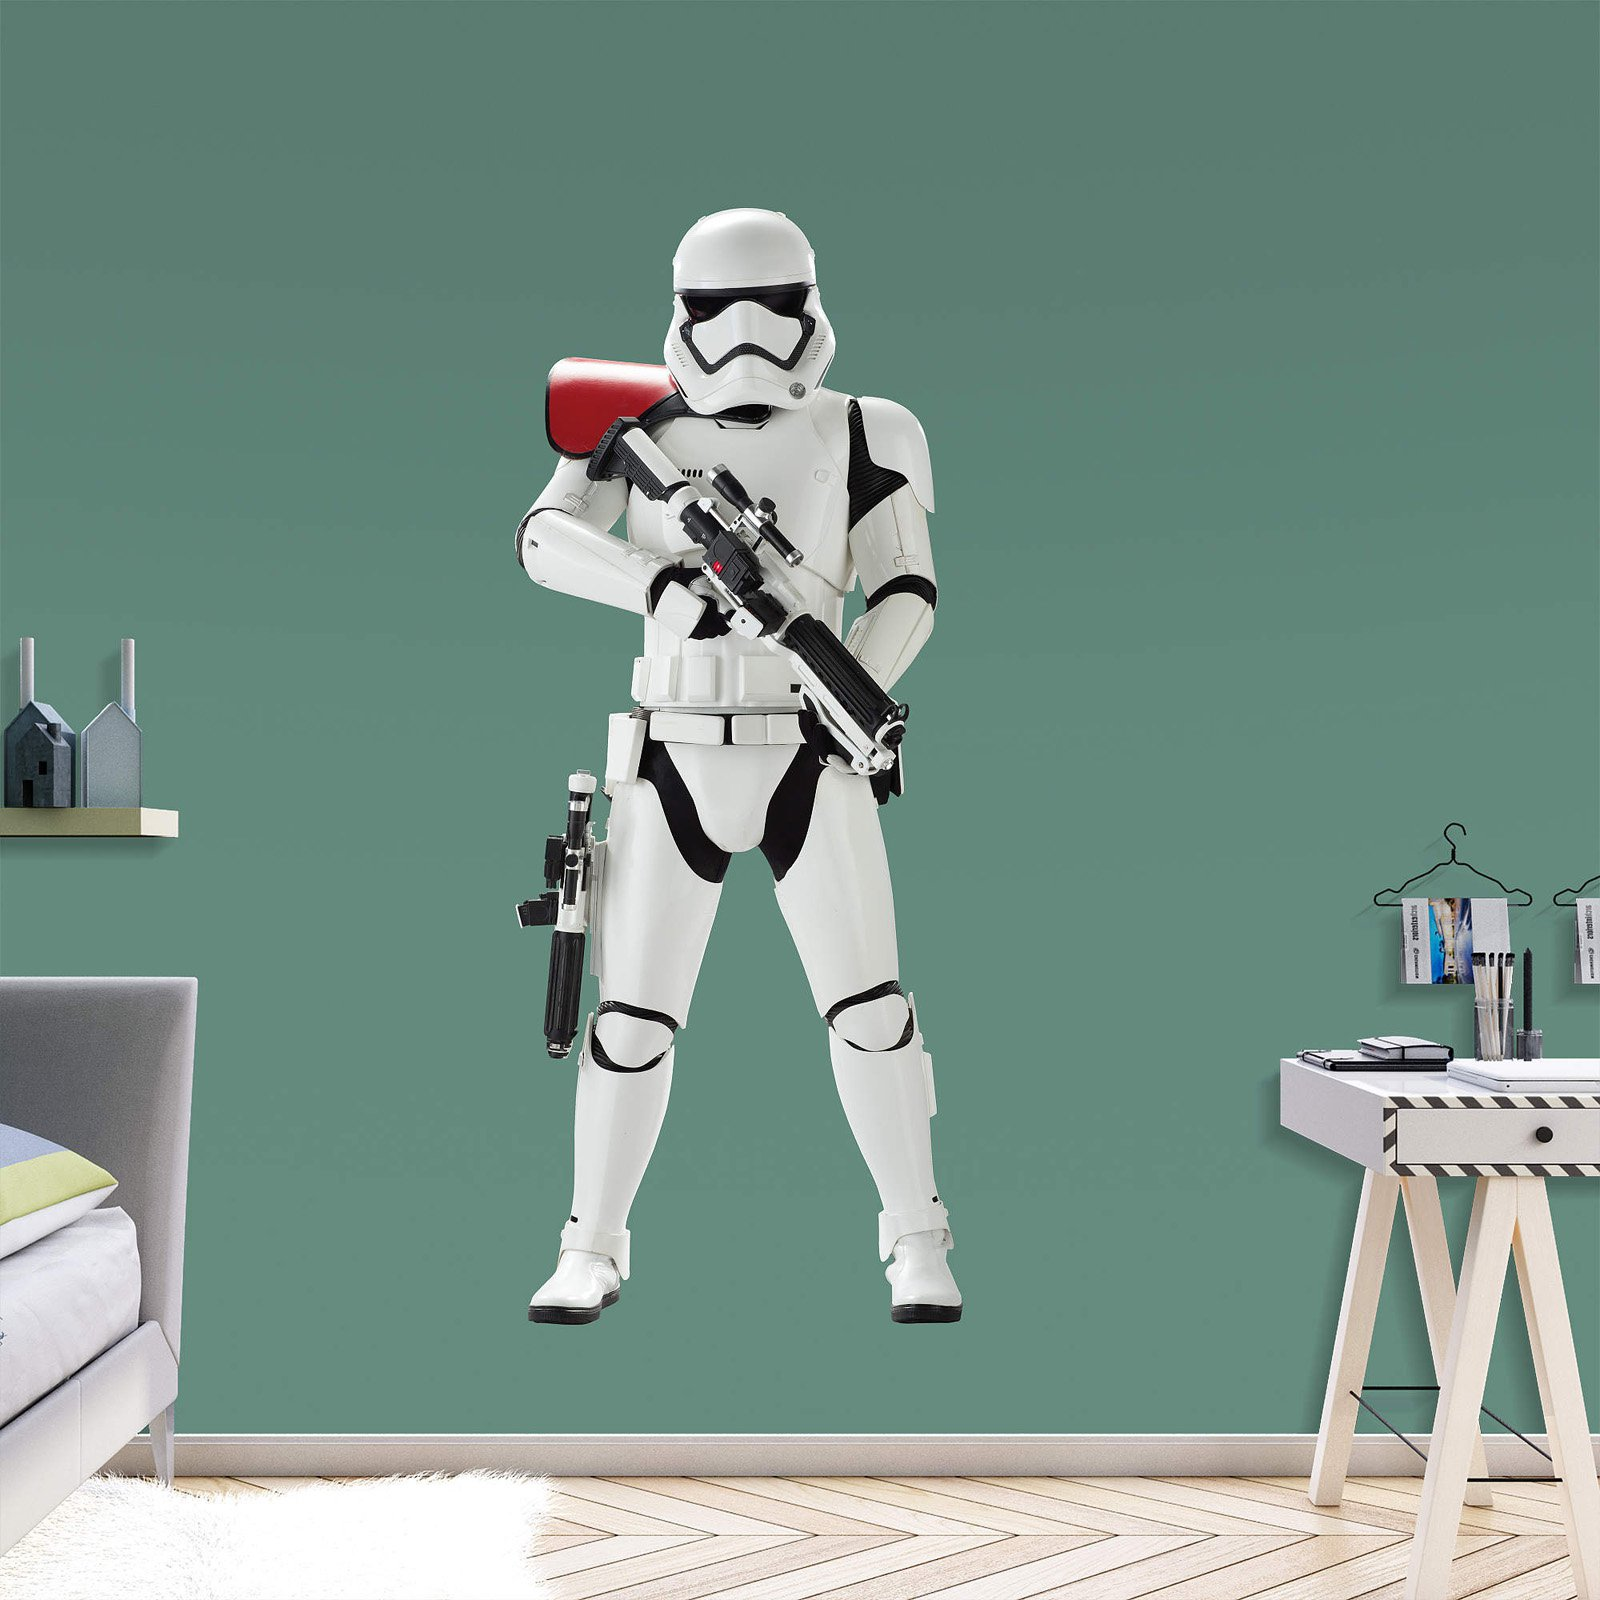 Fathead Star Wars Episode VII - Stormtrooper Wall Decal